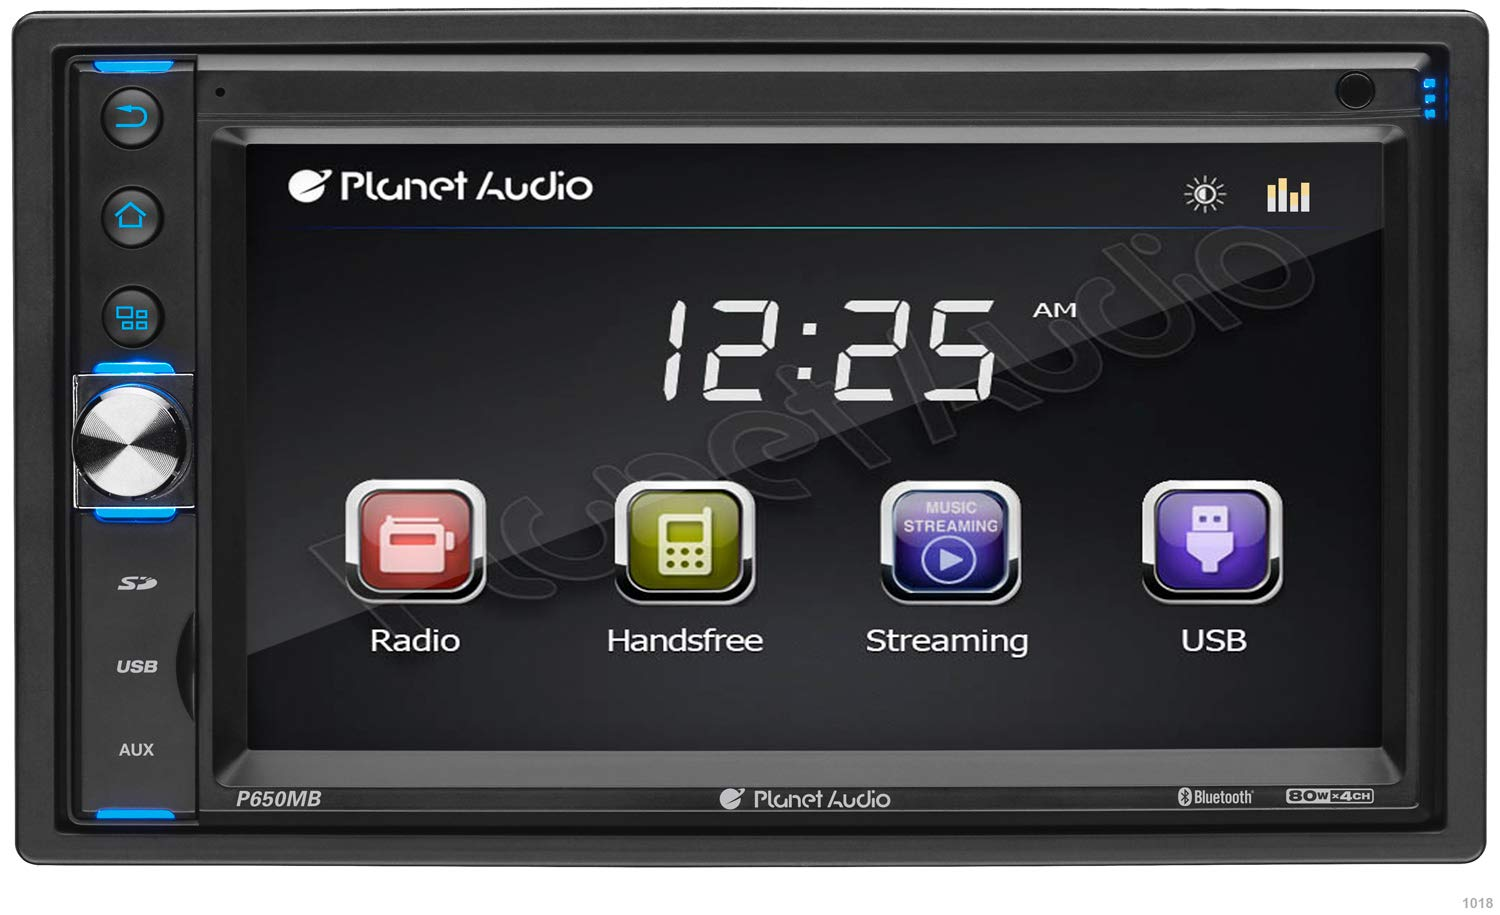 MP3//USB//SD AM//FM Car Stereo Touchscreen Wireless Remote Planet Audio P650MB Double Din Bluetooth 6.5 Inch Digital LCD Monitor No CD//DVD